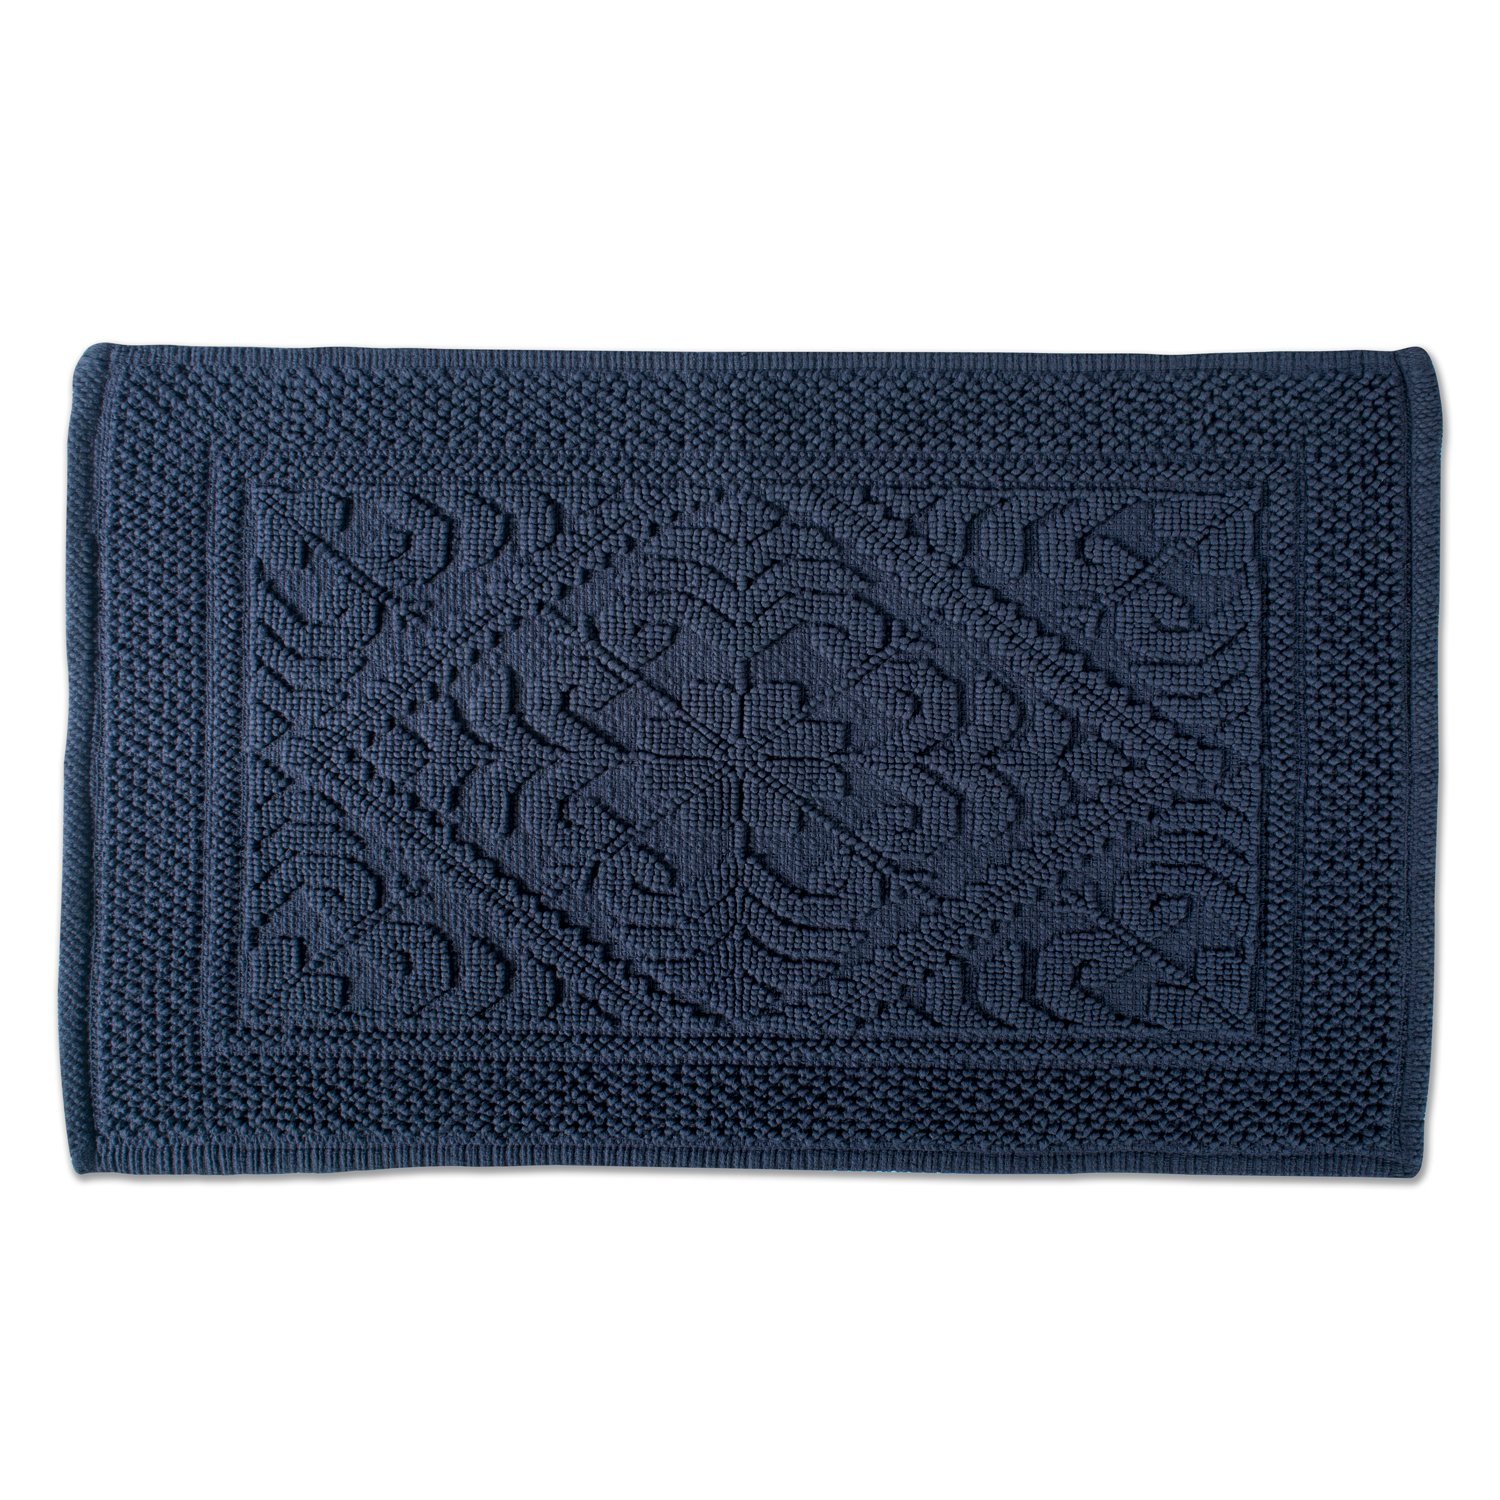 """DII Ultra Soft Luxury Spa Jacquard Damask Bath Mat Place in Front of Shower, Vanity, Bath Tub, Sink, and Toilet, 20 x 31"""" - Navy"""